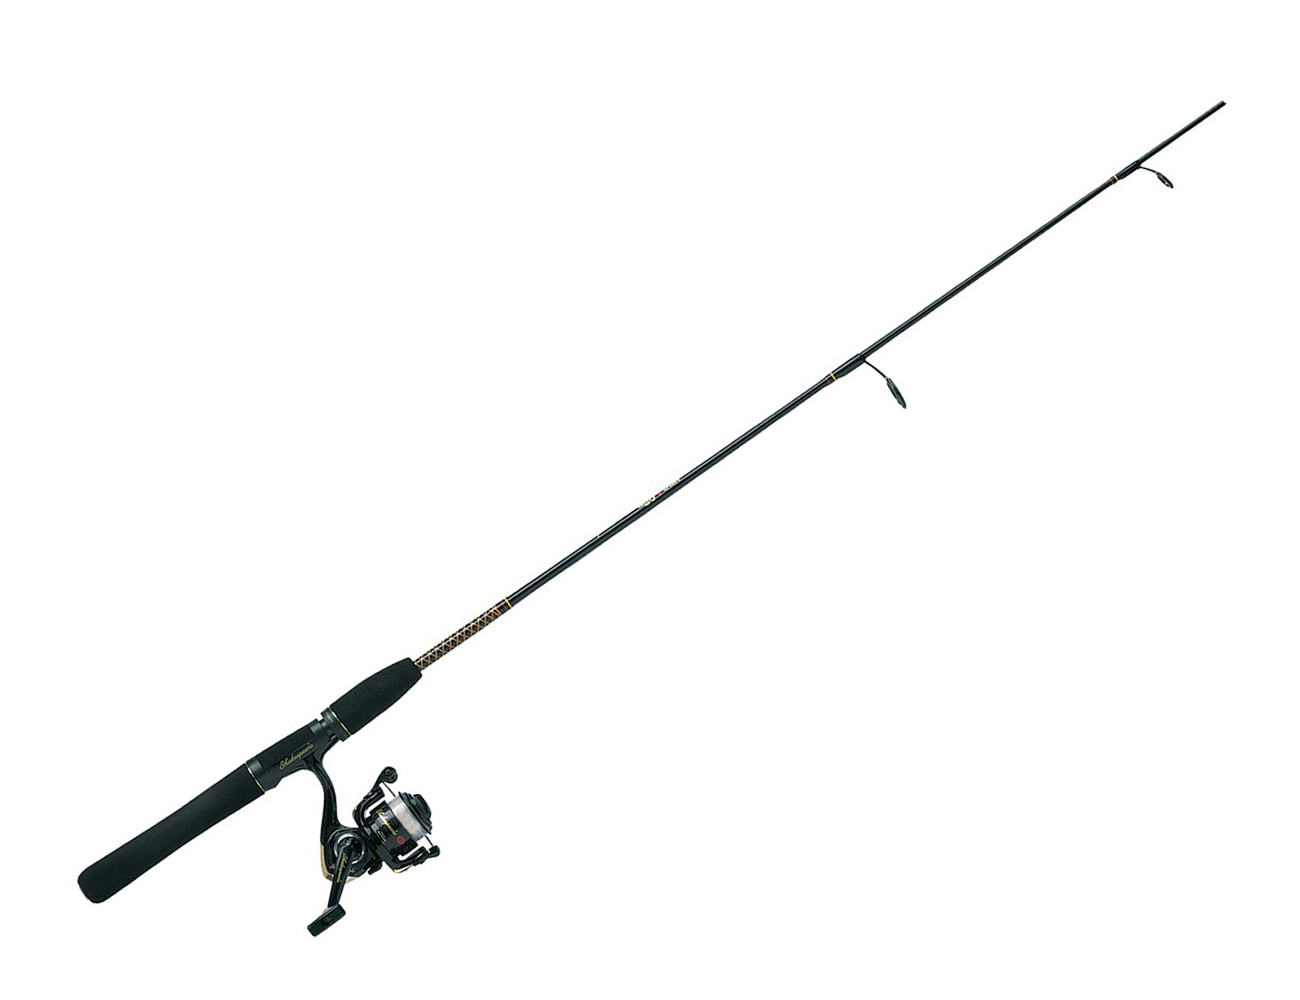 Fishing pole fishing rod clipart kiaavto 2 image